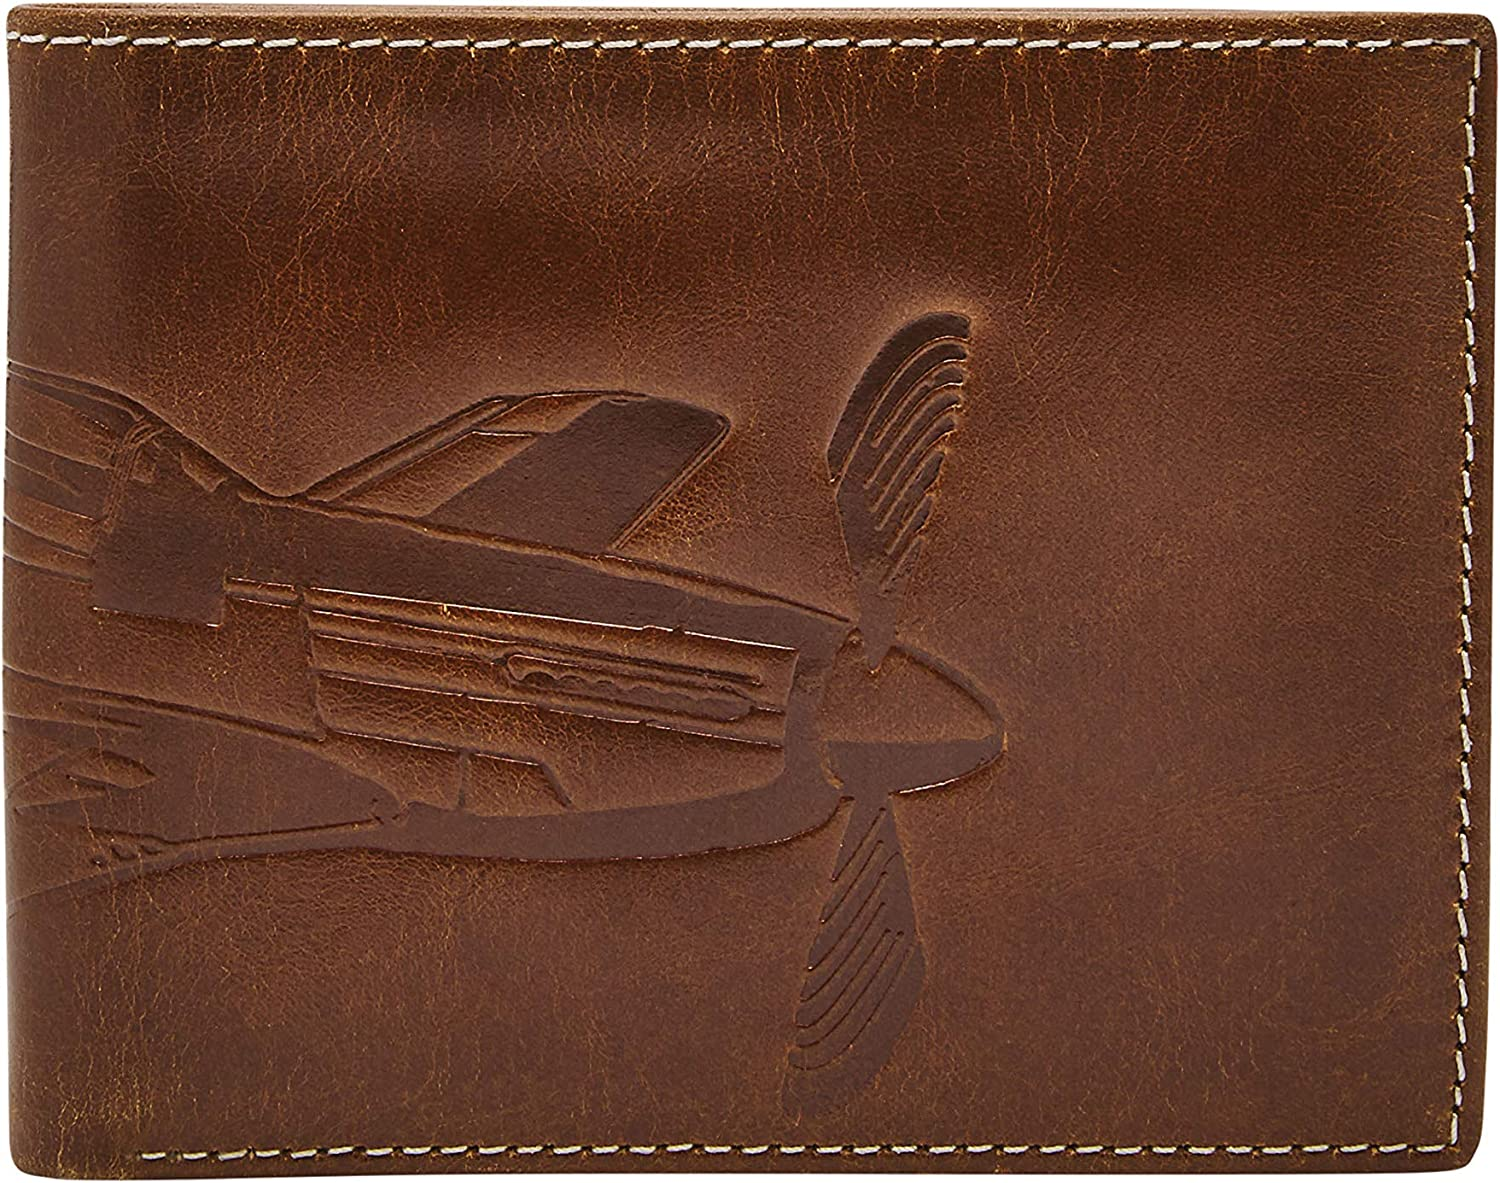 Fossil Men's Danny Embossed Bifold 35% OFF Wallet L-Zip Leather Directly managed store